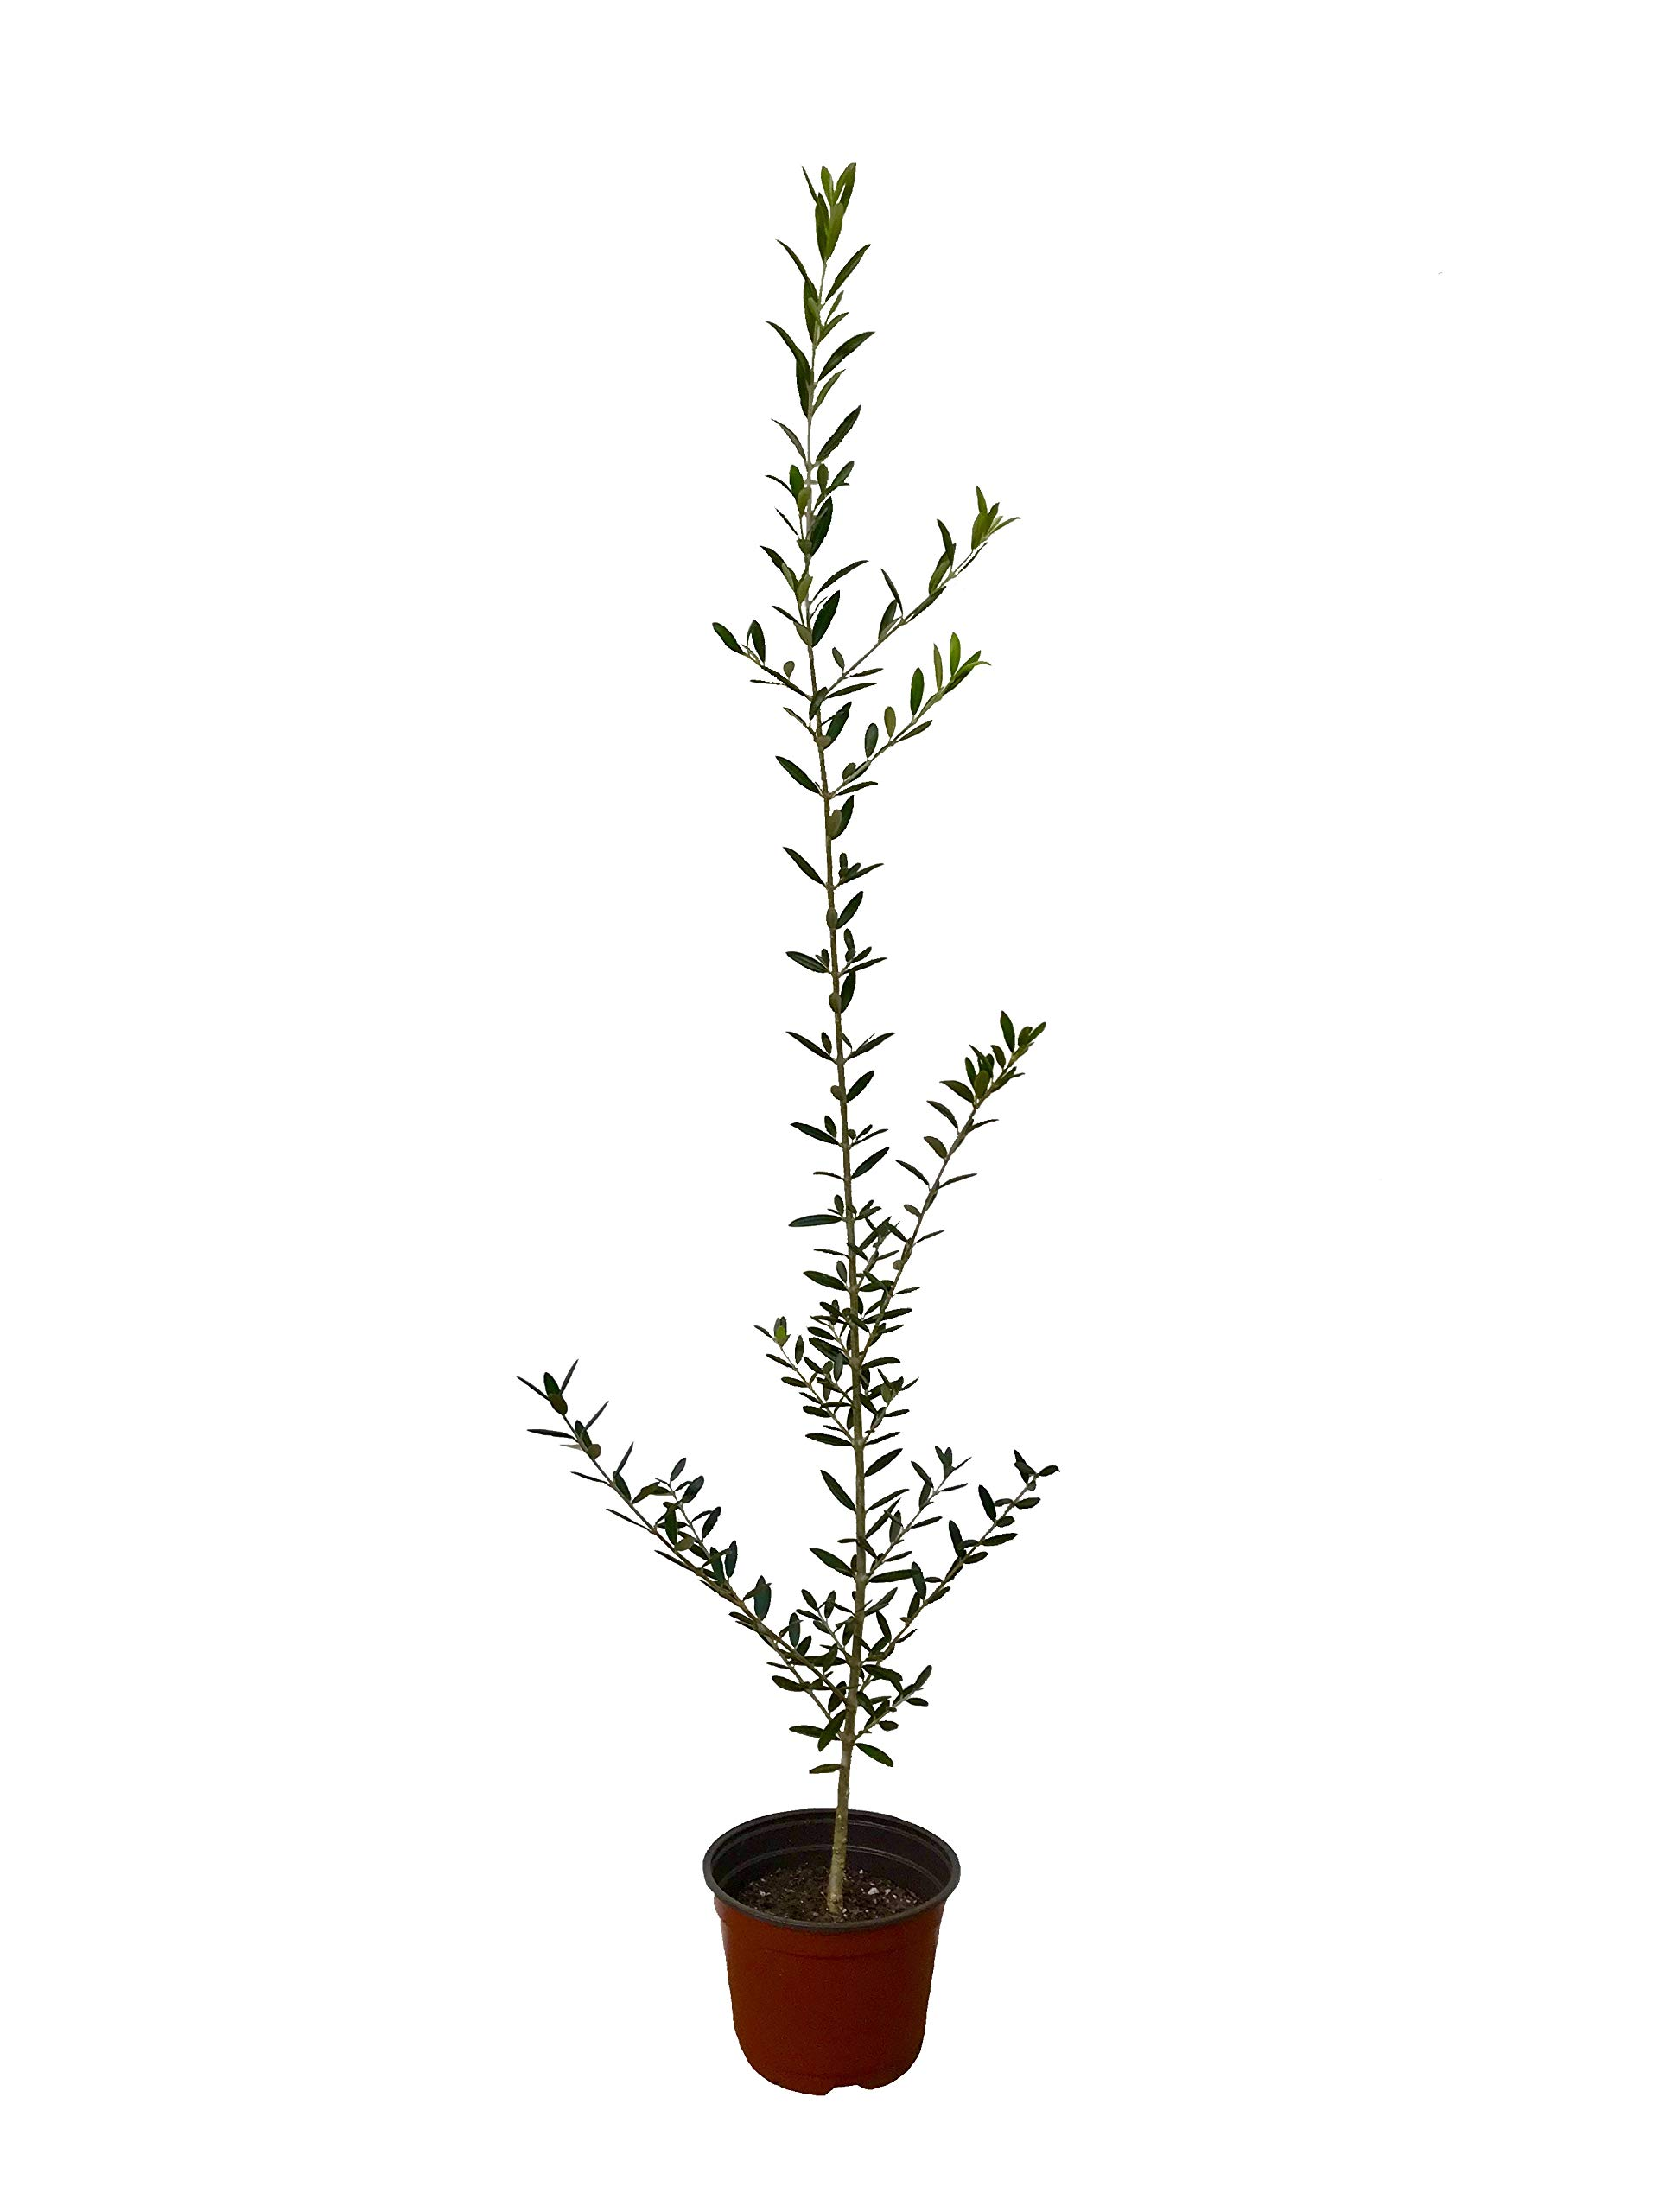 Arbequina Olive Tree - Beautiful Live Plant - 6 Inch Pot - Grow Your Own Olives Indoors - Olea Europaea